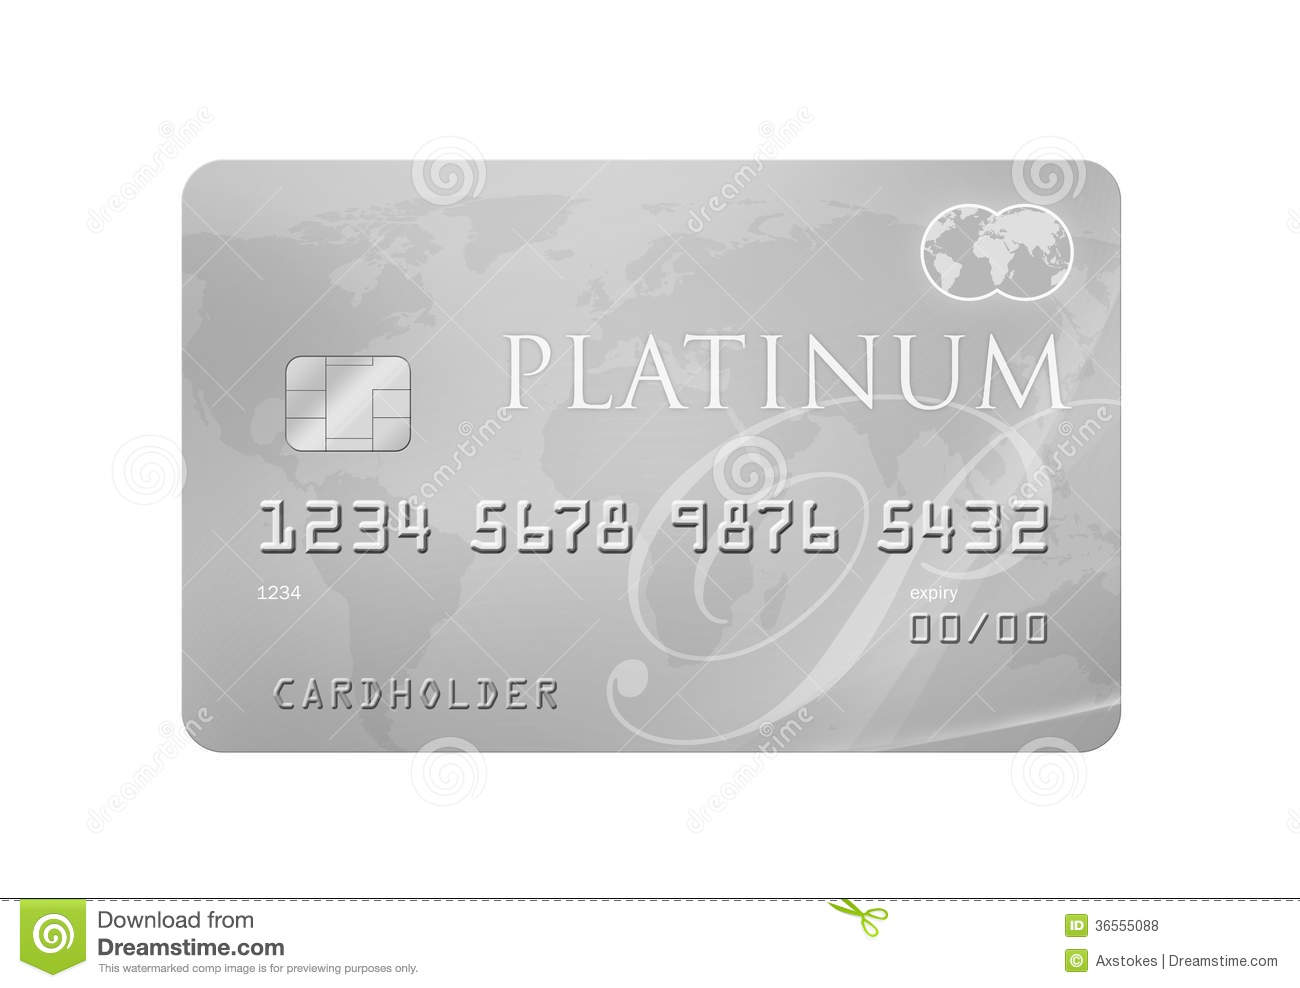 Platinum Credit/Debit Card with world map on the background with ...